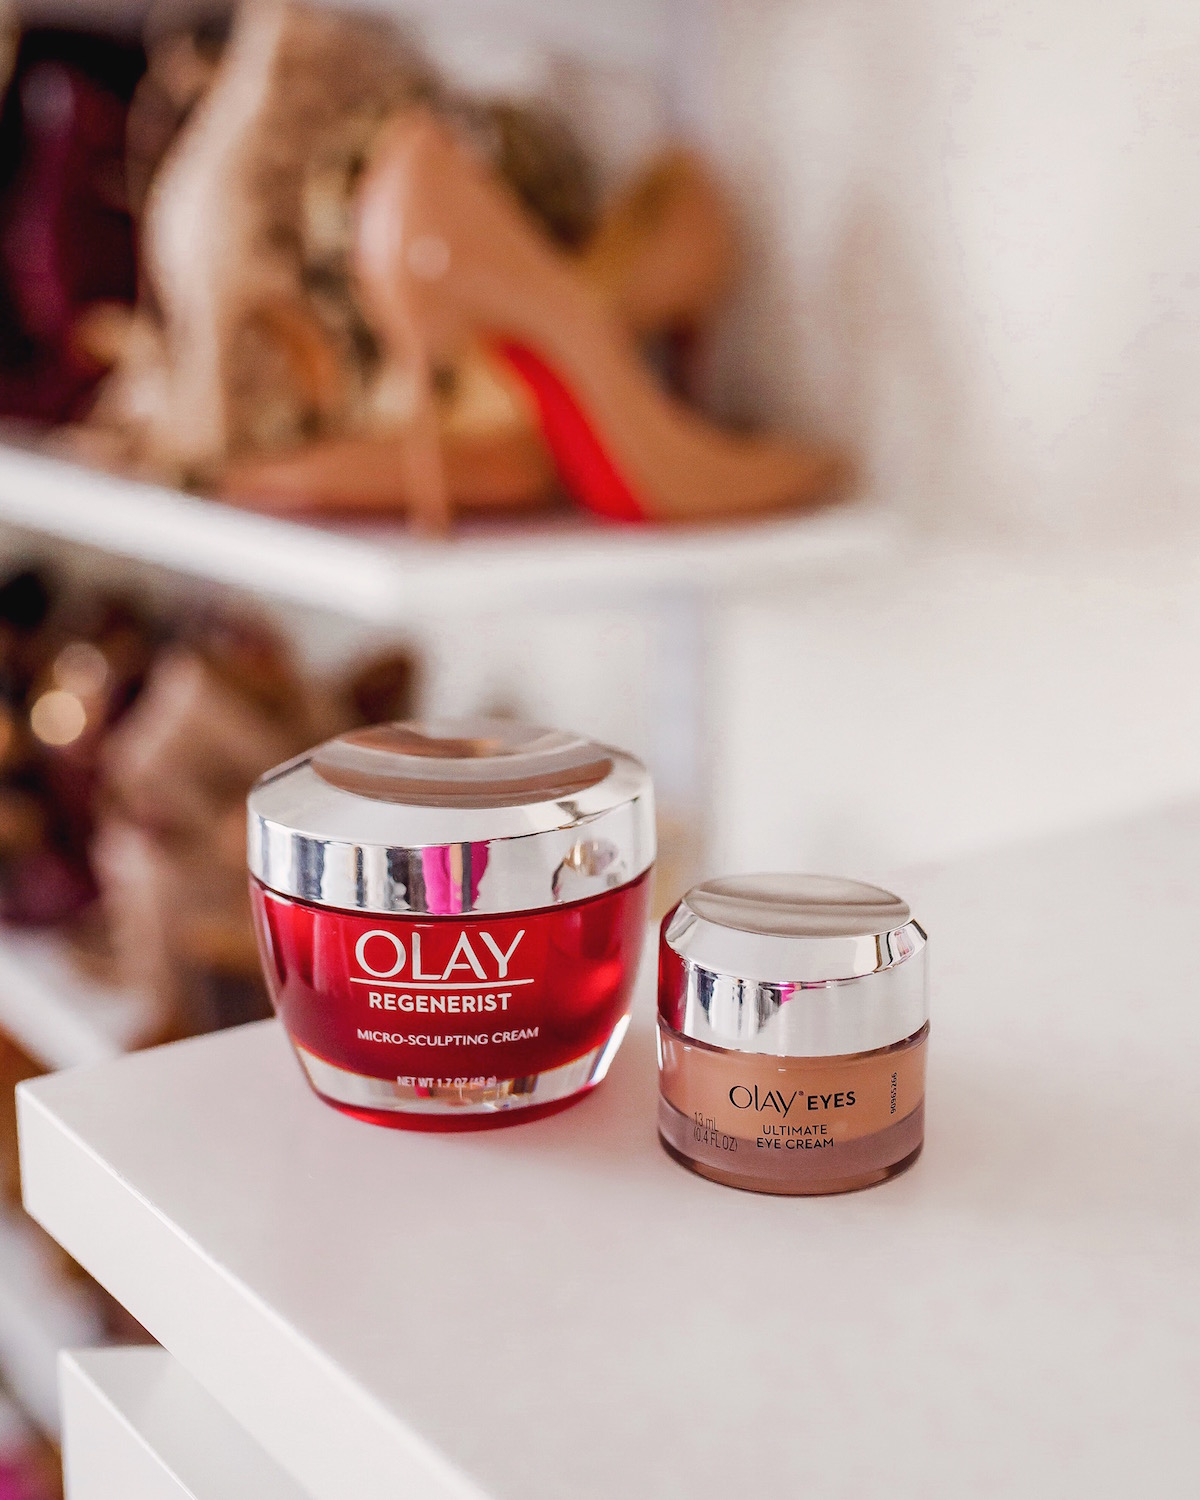 Olay Regenerist Micro Sculpting Cream Review 2018